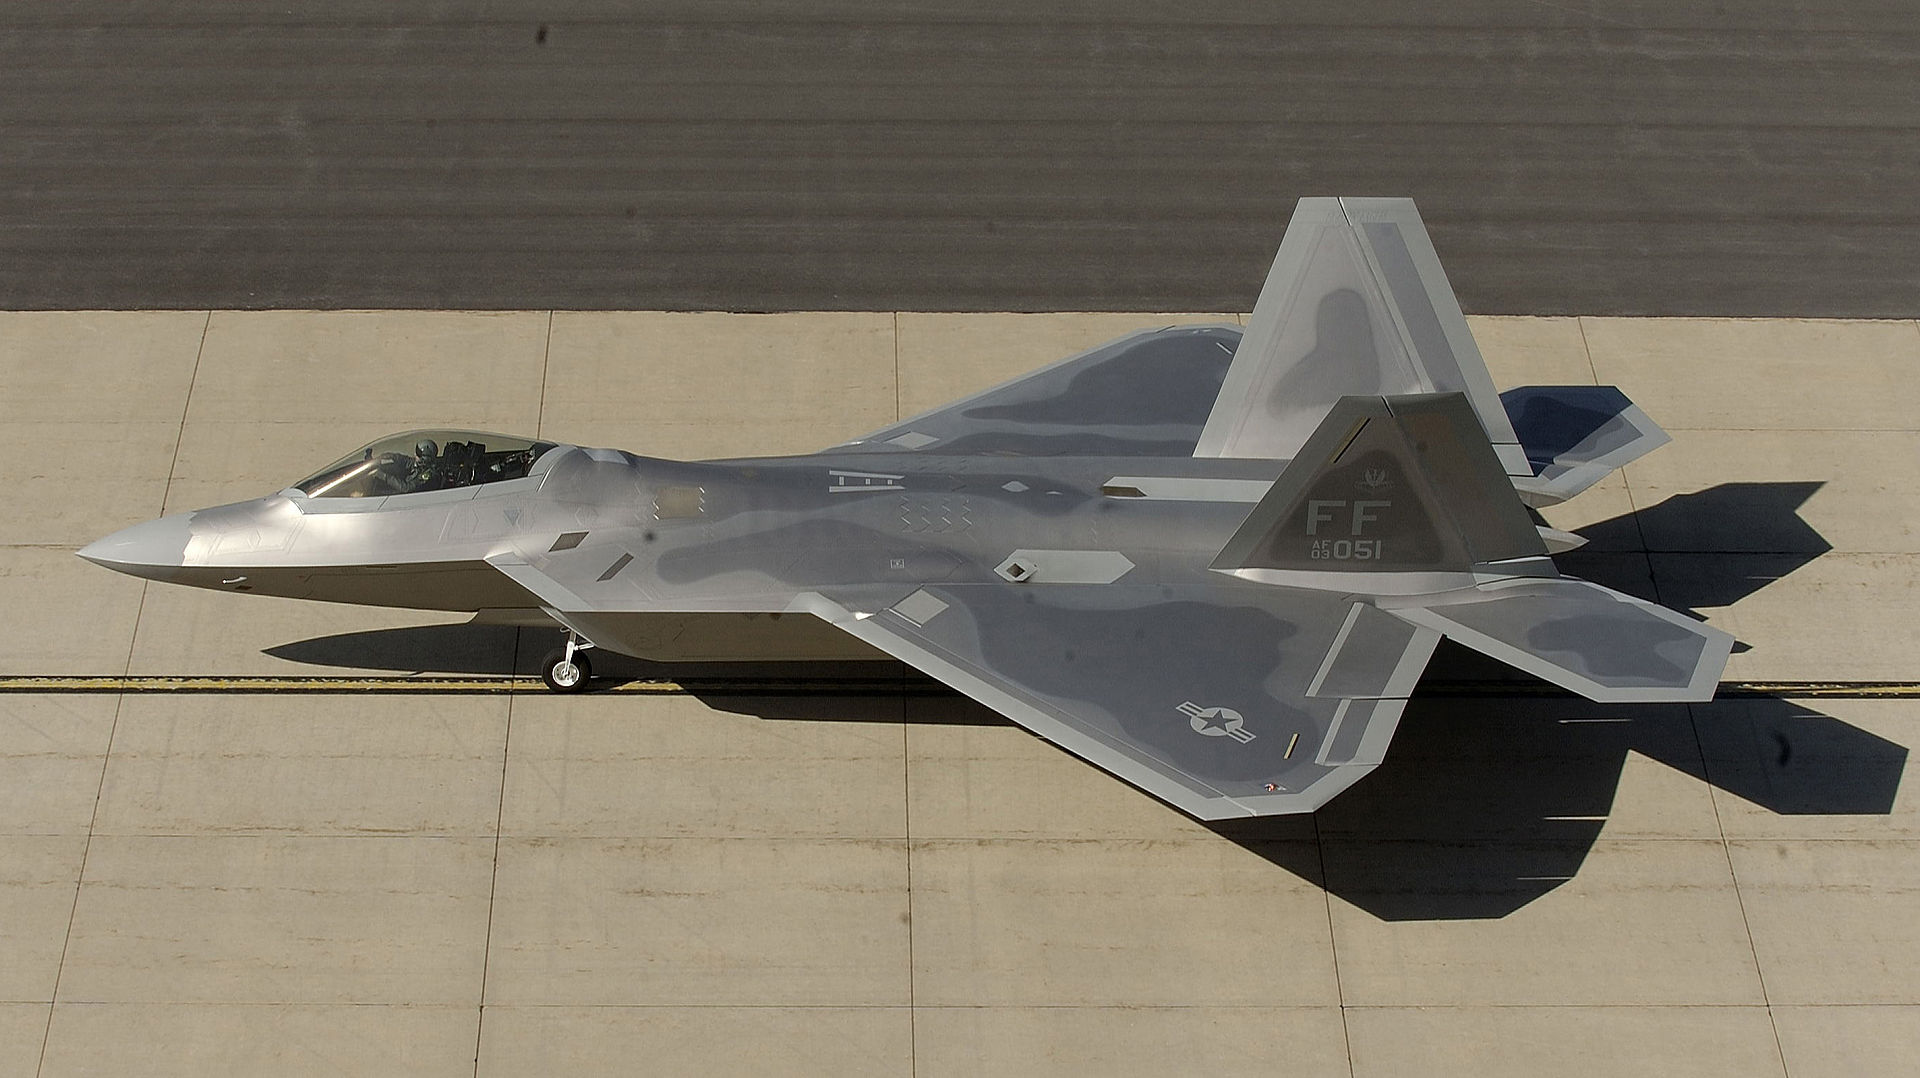 The Real Secret to Keeping an F-22 and F-35 Stealth: Their Super Special 'Skin'